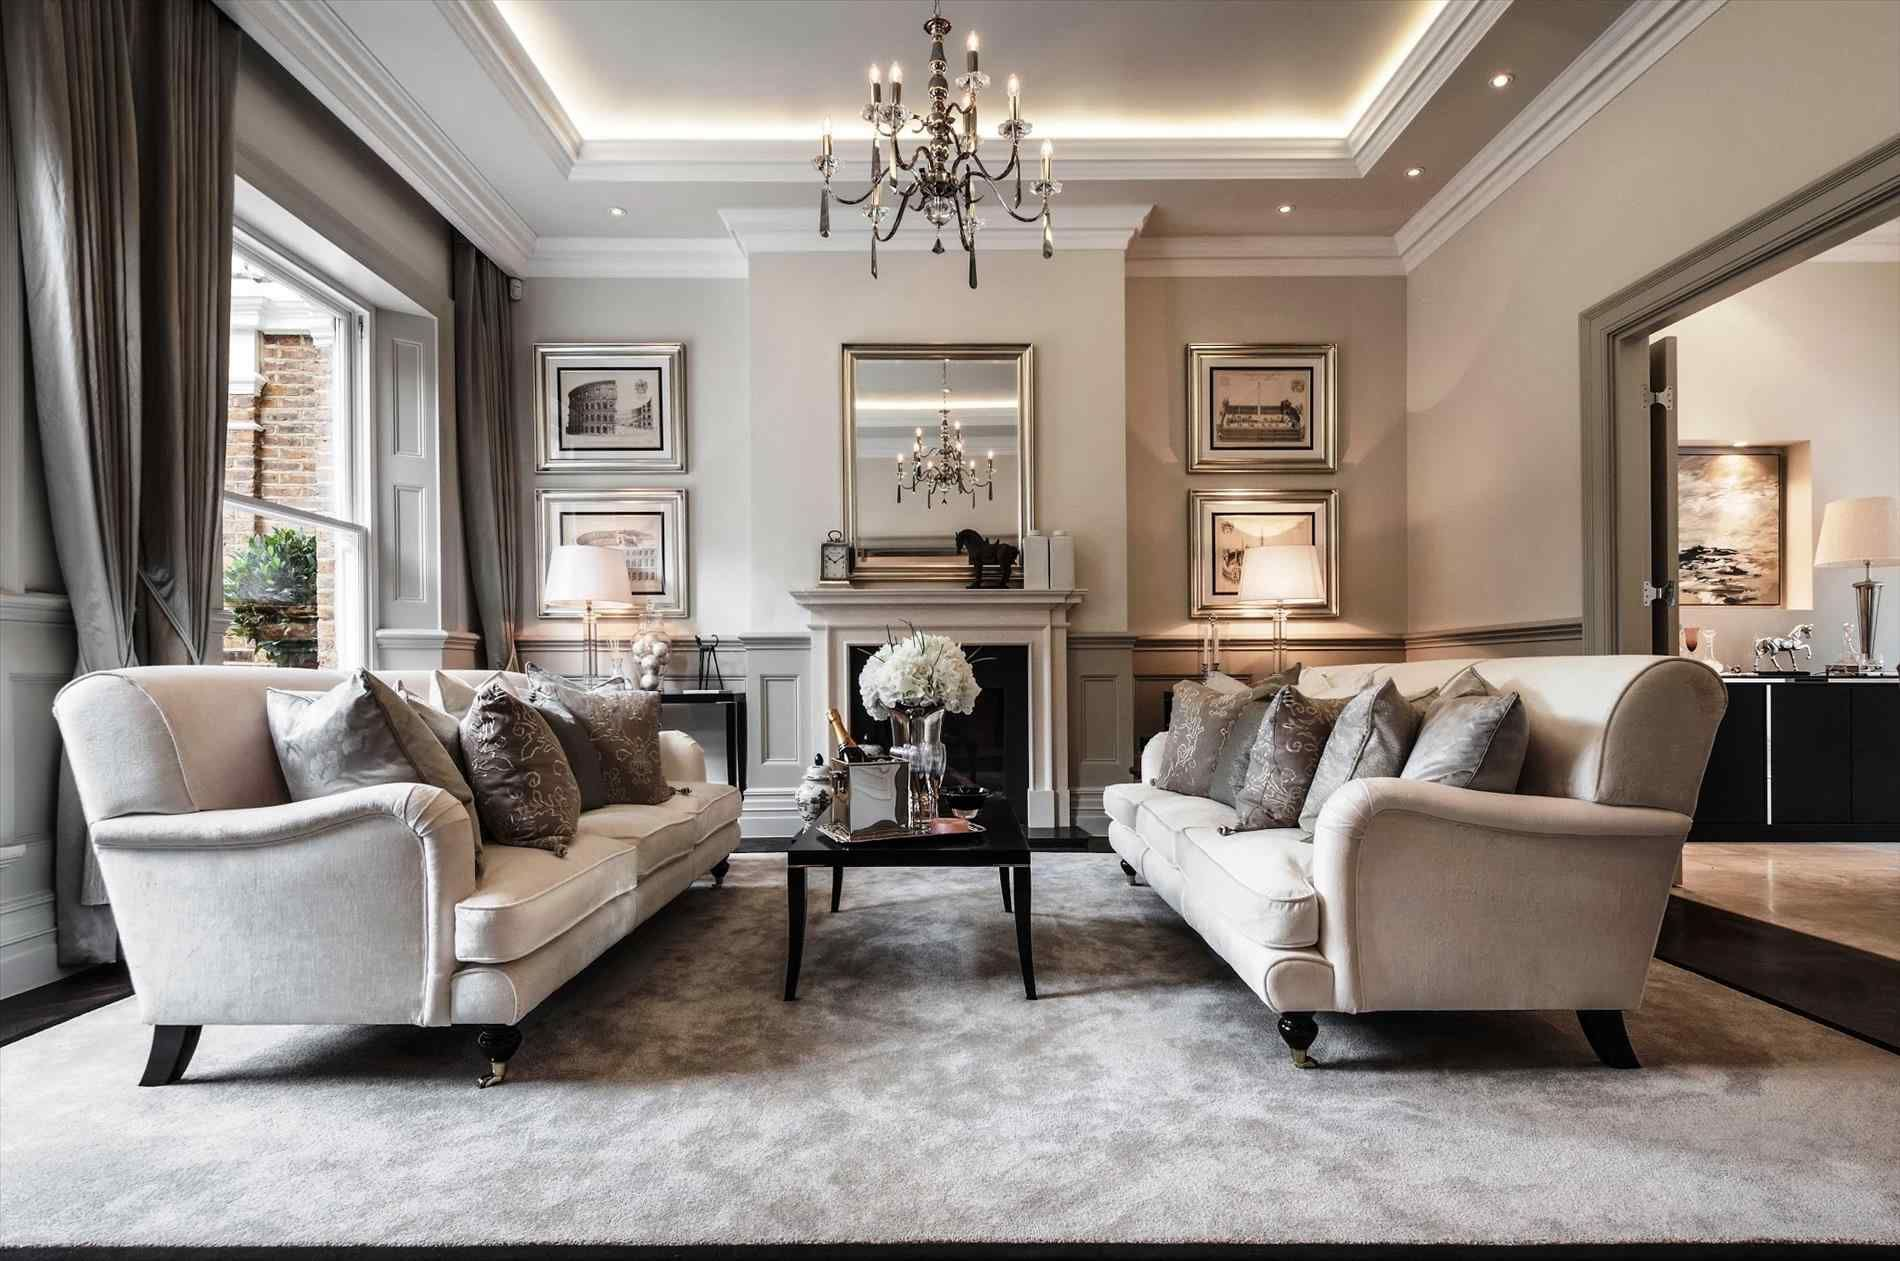 Image result for modern traditional living room | Fresh, clean ...